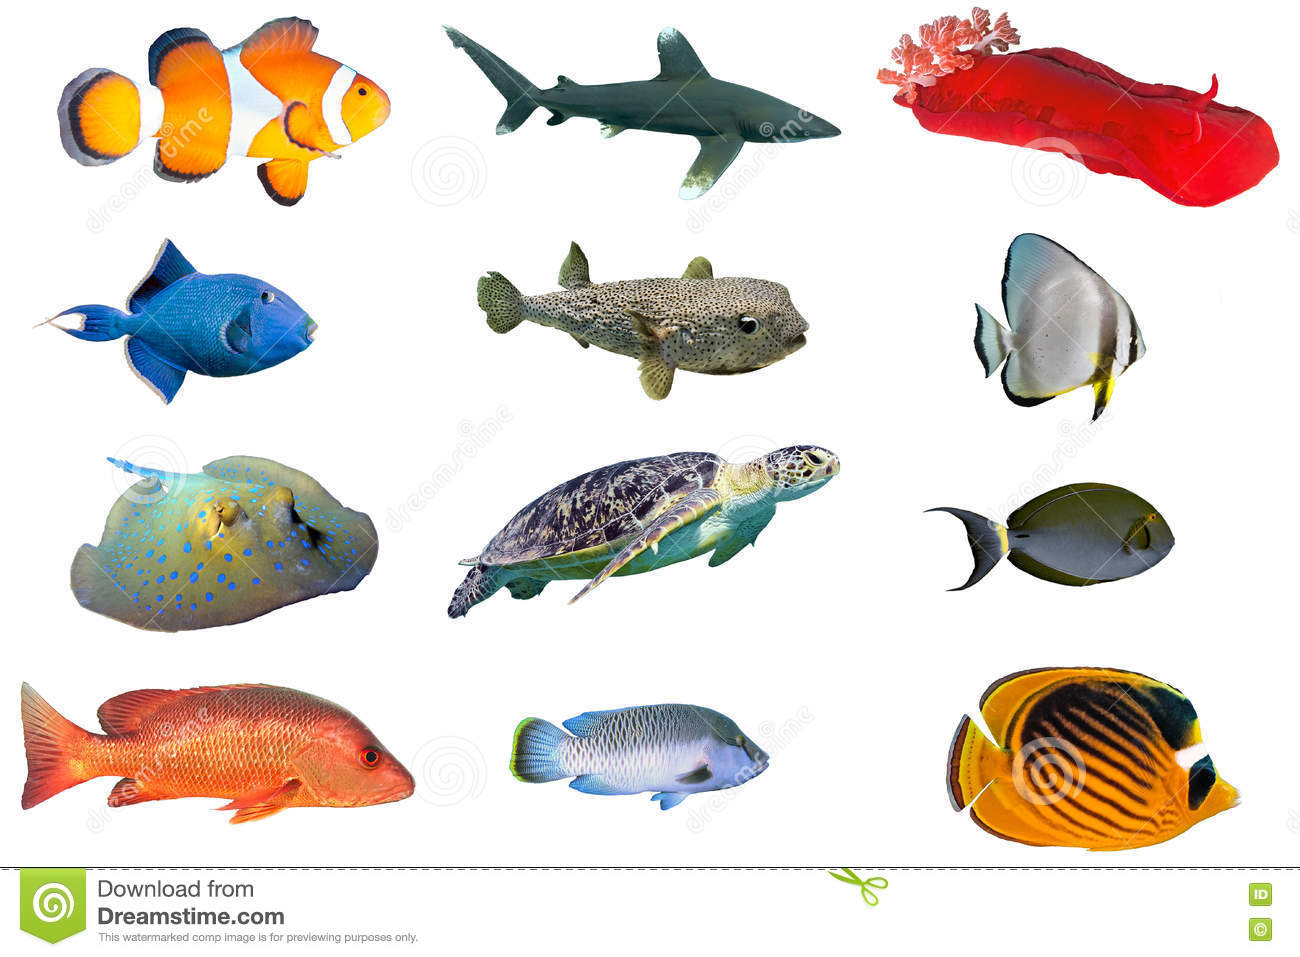 Fish species index of red sea fish isolated on white for Ocean fish species